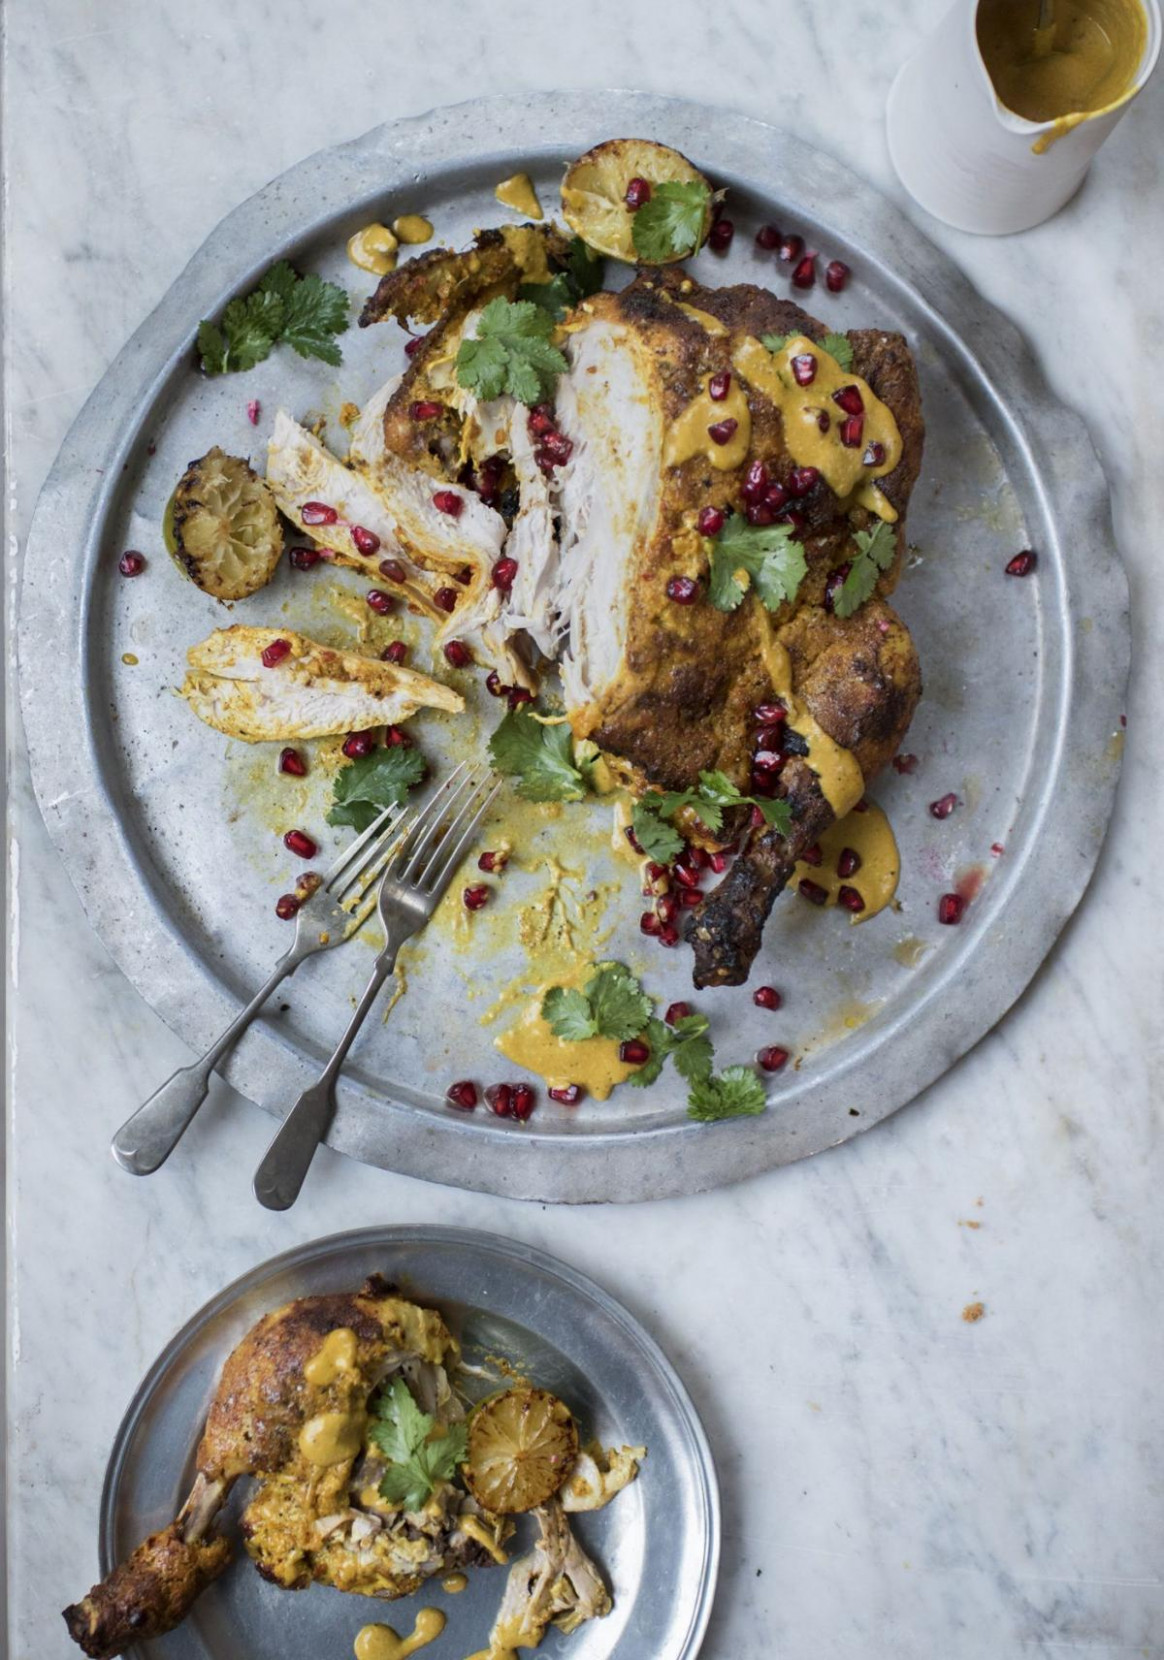 Recipes: Sri Lankan food with a British twist from Emily ..